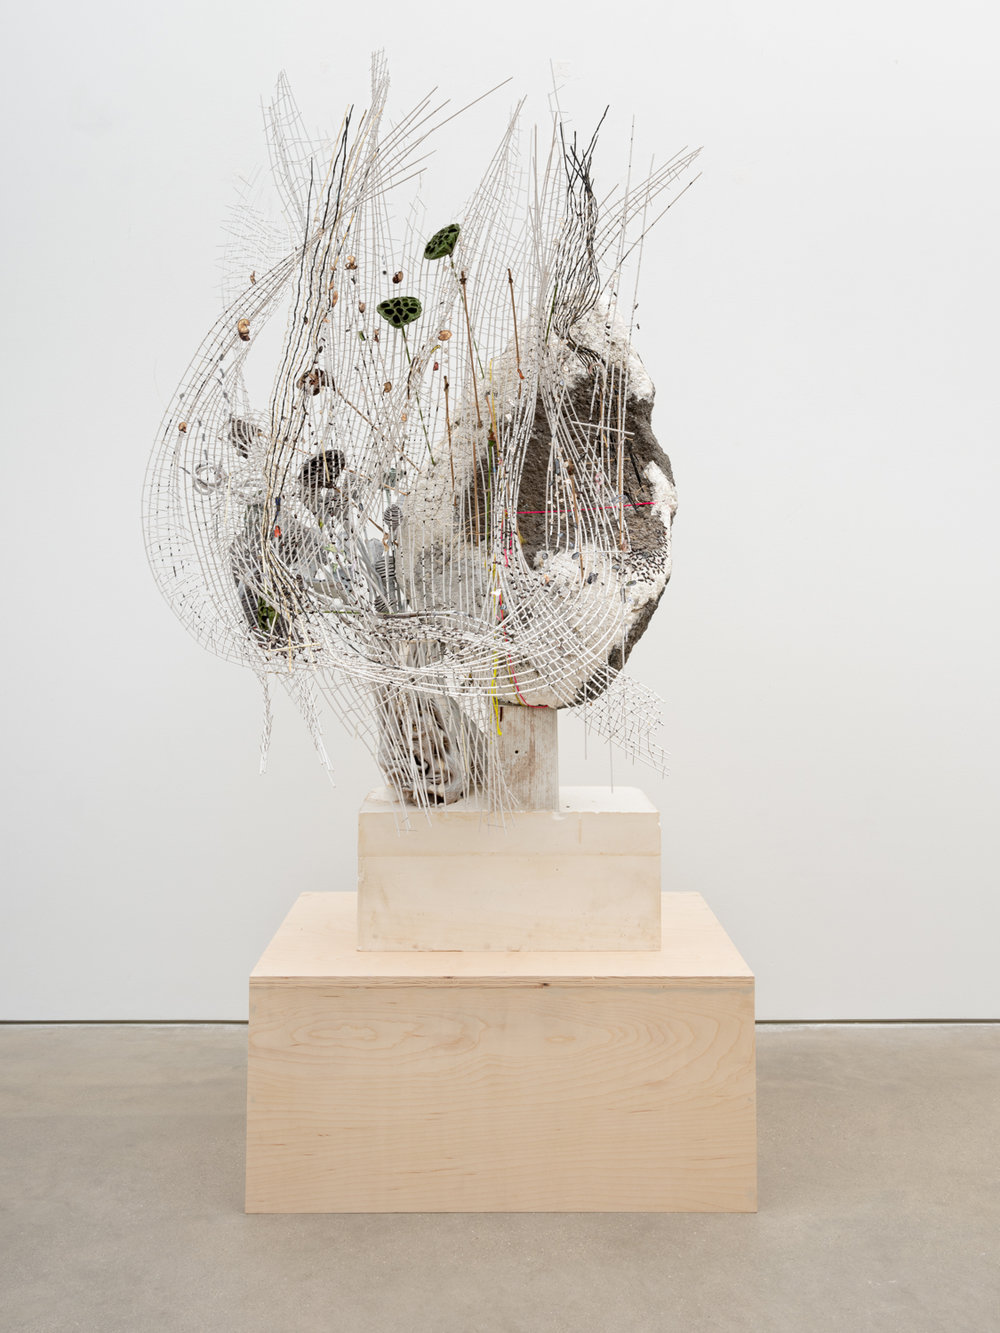 Elliott Hundley  Foot  2018 Plaster, foam, wood, plastic, pins, lotus, paper, string, and feathers 54h x 34w x 30d in EHun014